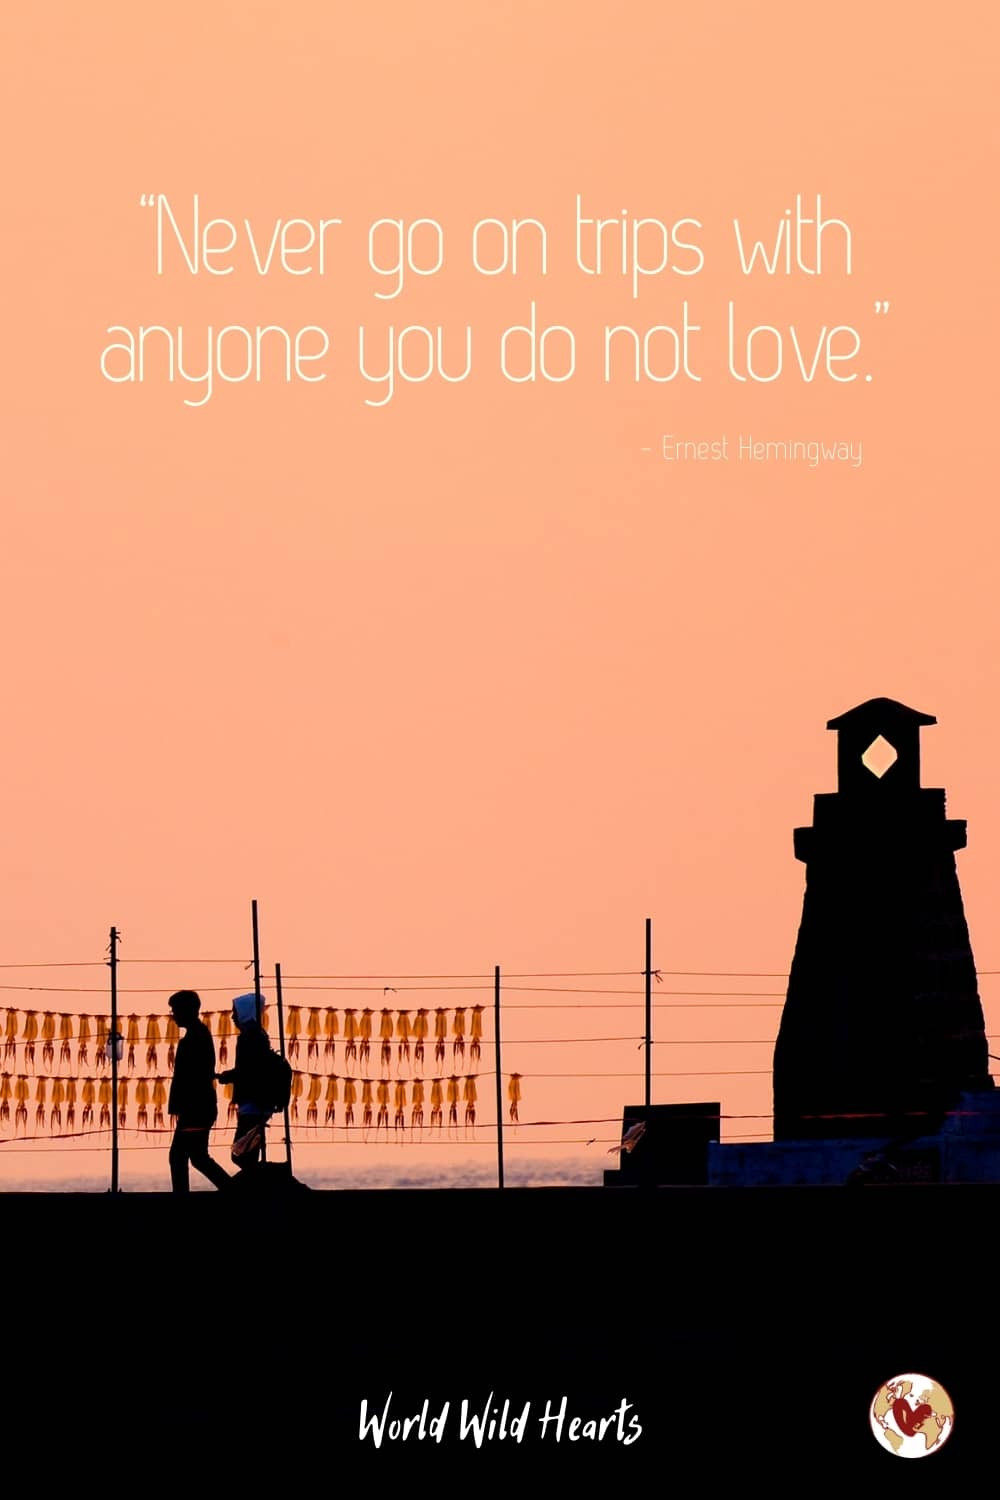 Love travel quote for couples